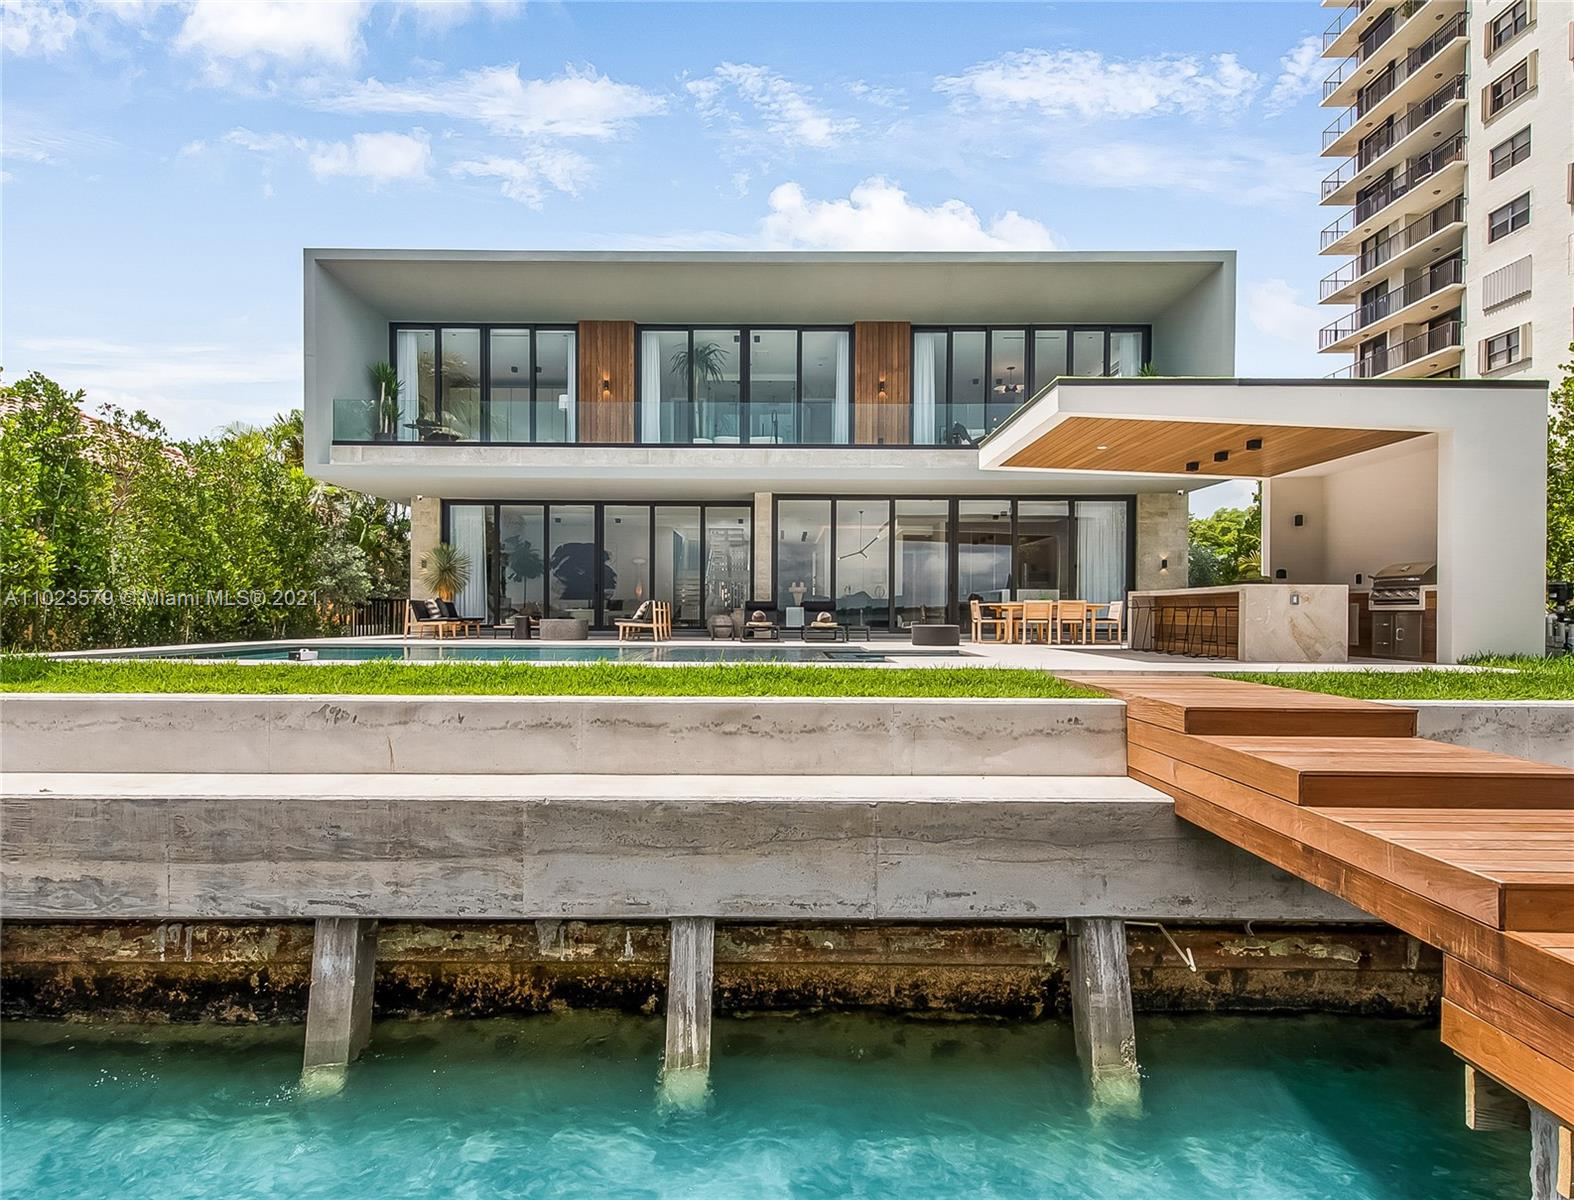 Venetian Islands brand-new waterfront with striking contemporary architecture offering 75 feet of wide bayfront and stunning water and Miami Skyline views! Walk into this dream, 6,400-SF home to find open-concept living areas with Italkraft kitchen, floating staircase, and interior courtyard – all overflown with sunlight and sparkling water views. Excellent floor plan with 2 beds down (guest & maids) and 5 large beds with en-suite baths, walk-in closets, and terraces. Spectacular master suite with lavish bath that will take your breath away! The upper family room is perfect for family gatherings and movie nights. Wood floors, high ceilings, many terraces, music system, security cameras, 2-car garage. Situated on a 11,250-SF lot on residential N Venetian. Fully completed and move-in ready